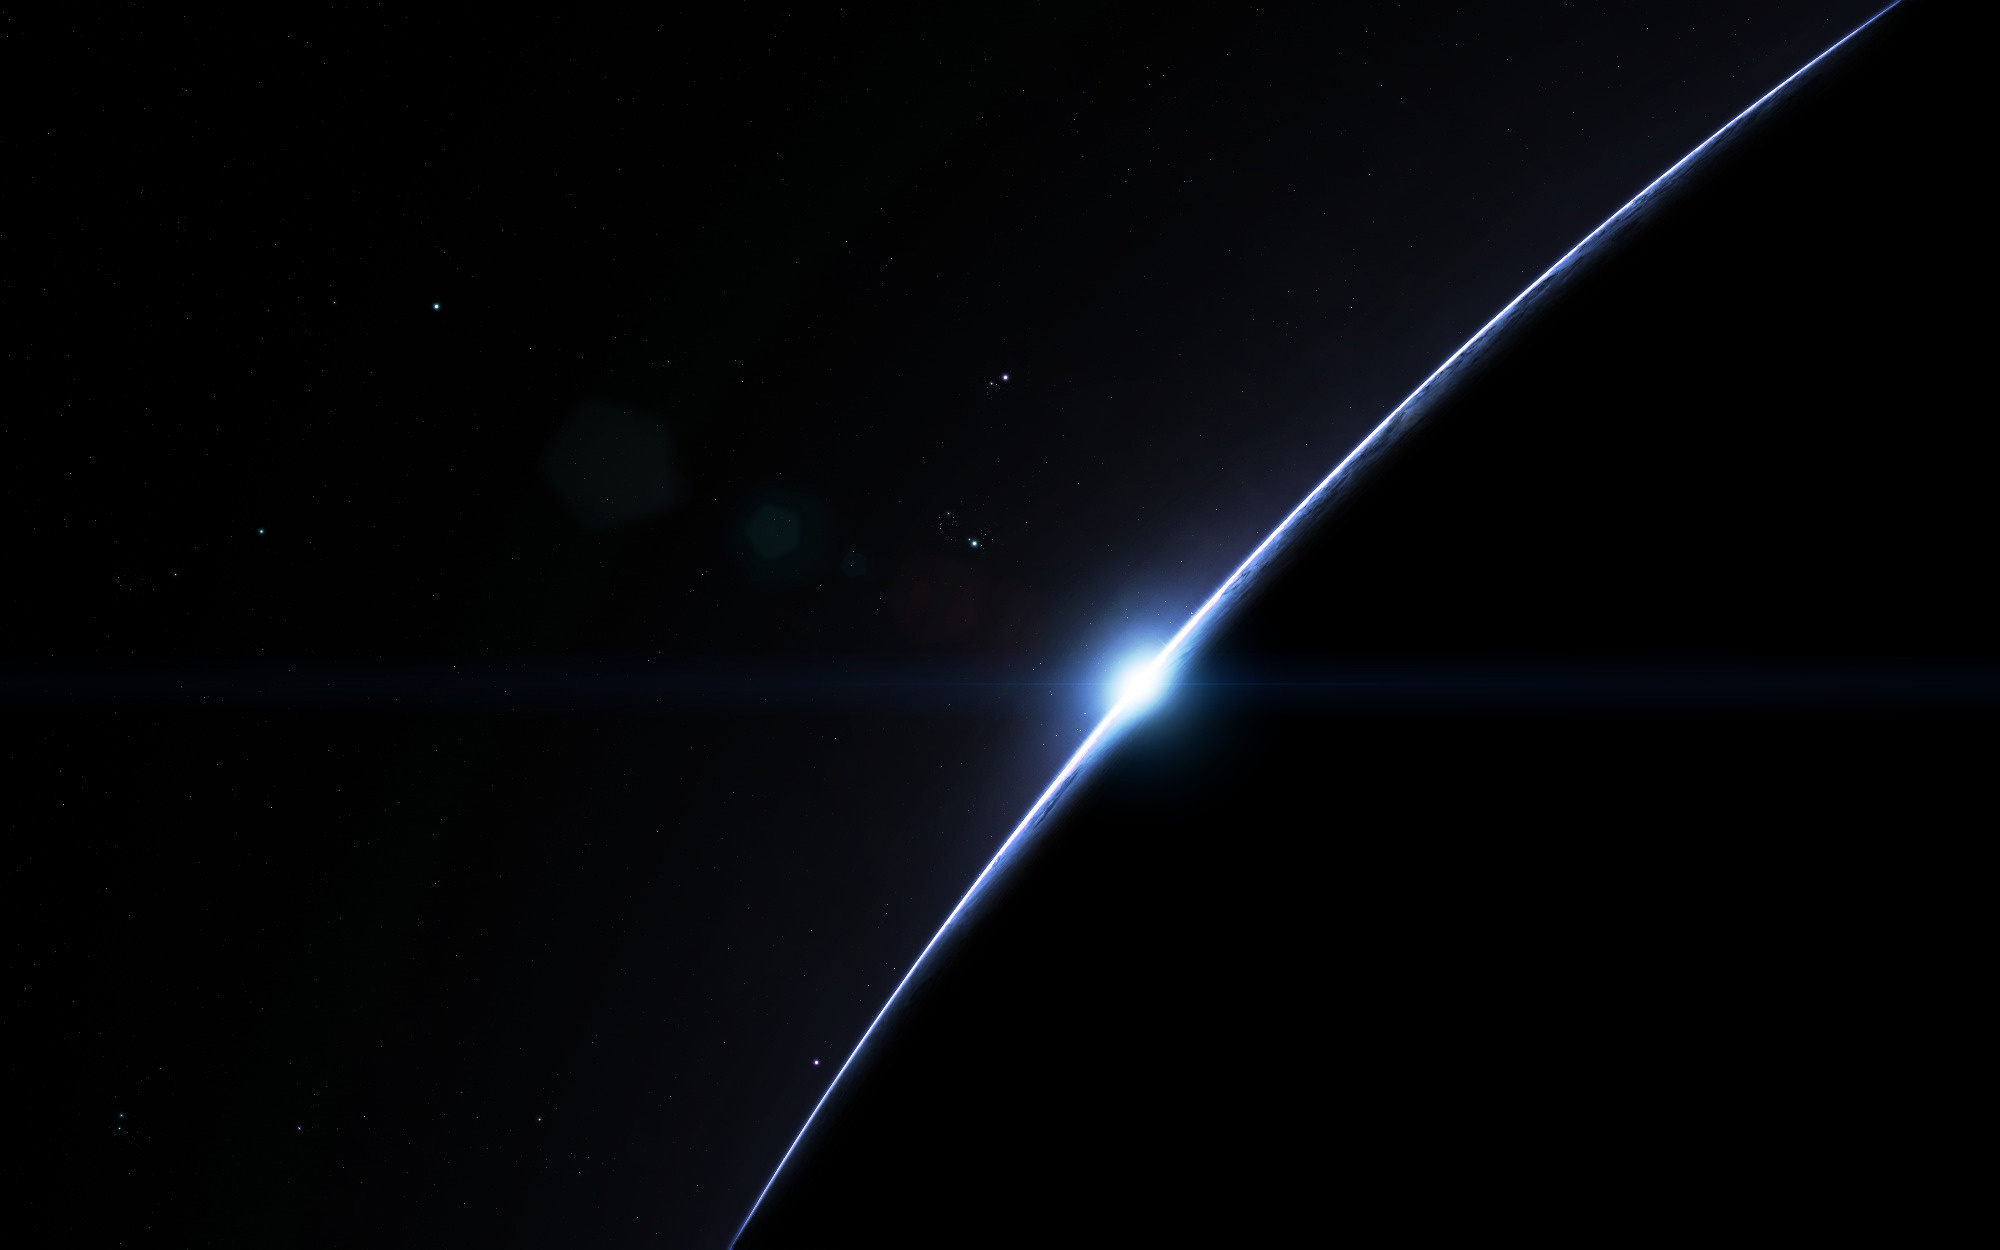 Wallpaper dark simple space planet sunrise stars 2000x1250